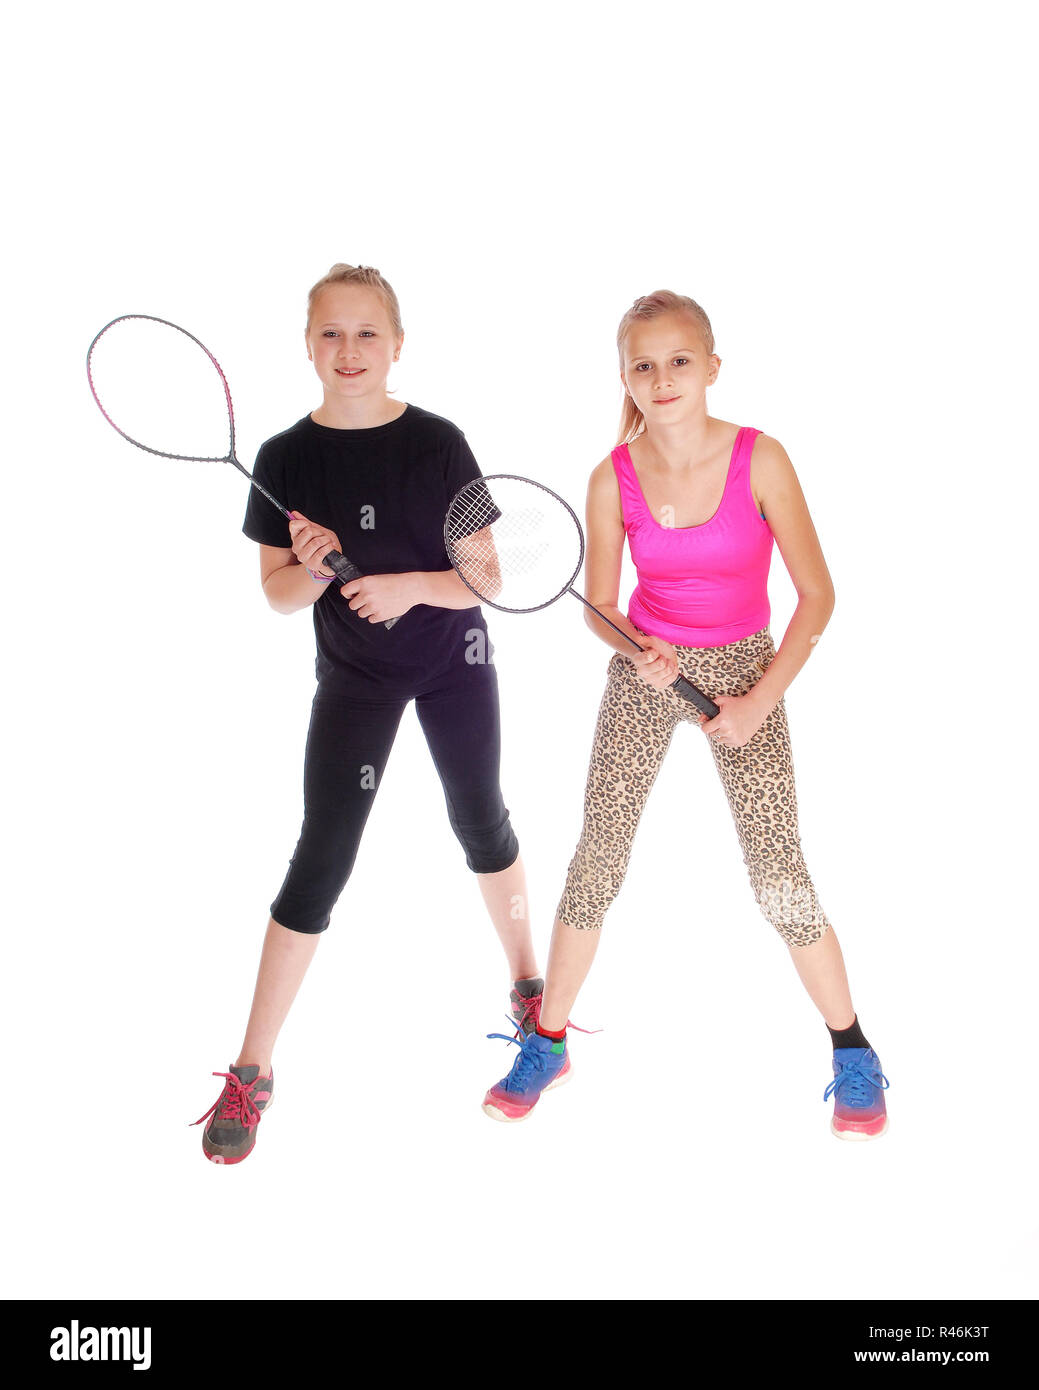 Two girls with tennis racquet. - Stock Image